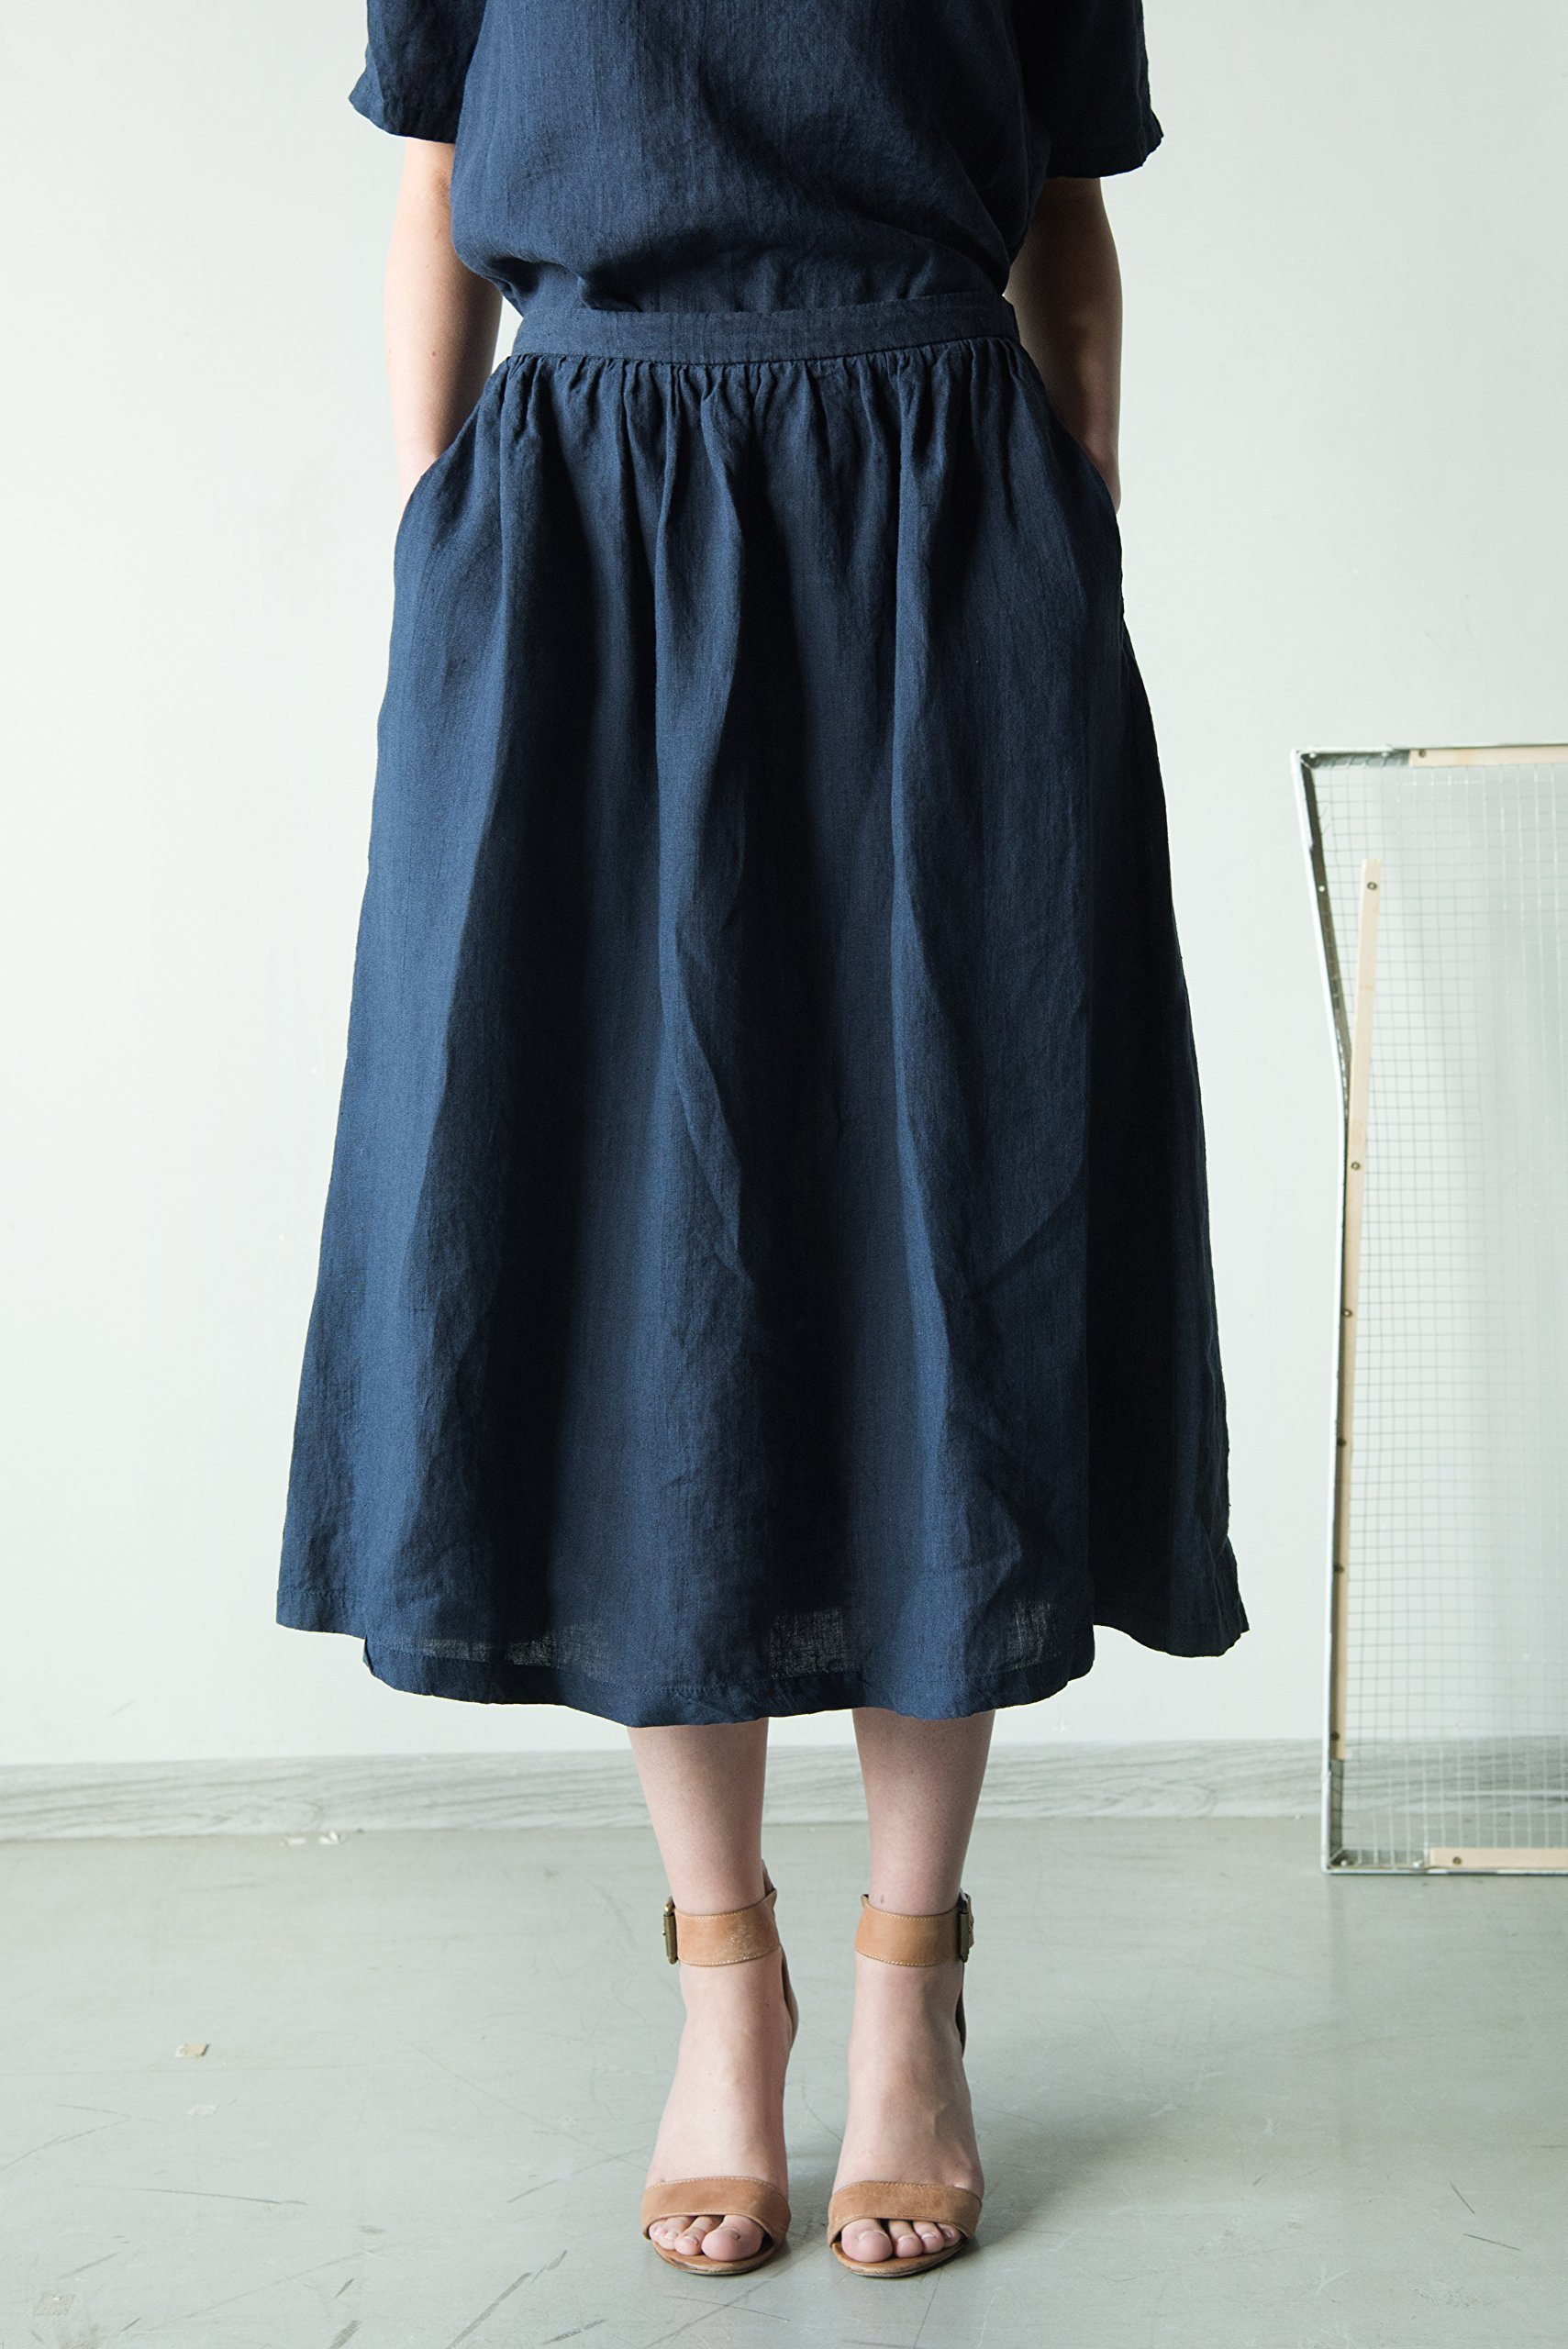 Midnight blue linen skirt, blue pleated skirt, handmade in Europe